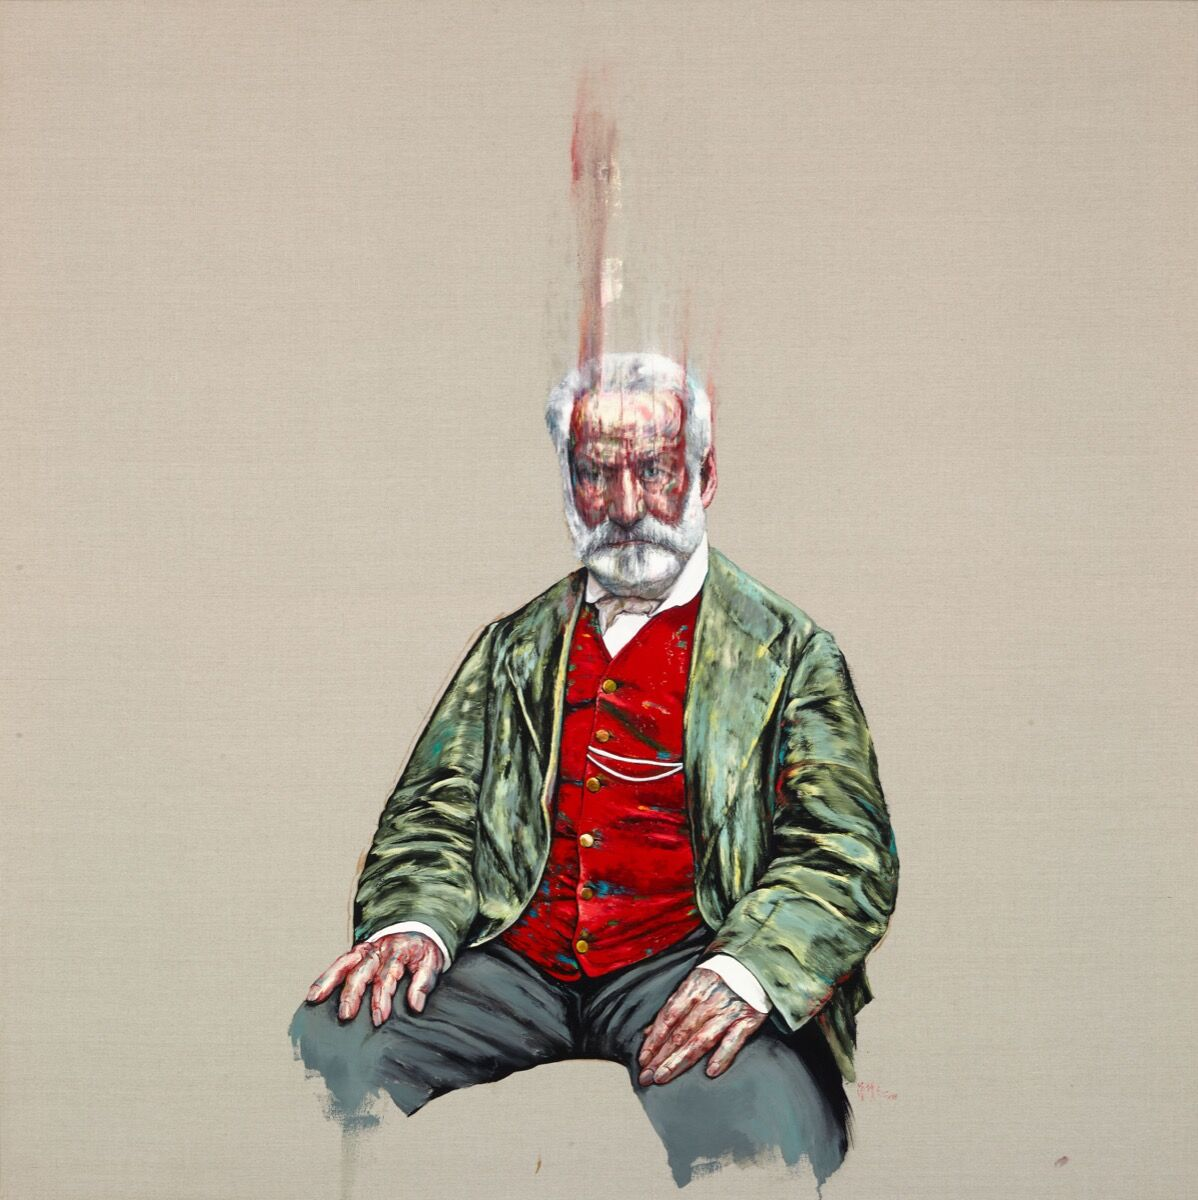 Zeng Fanzhi, Victor Hugo, 2018. © Zeng Fanzhi. Courtesy of the artist and Hauser & Wirth.